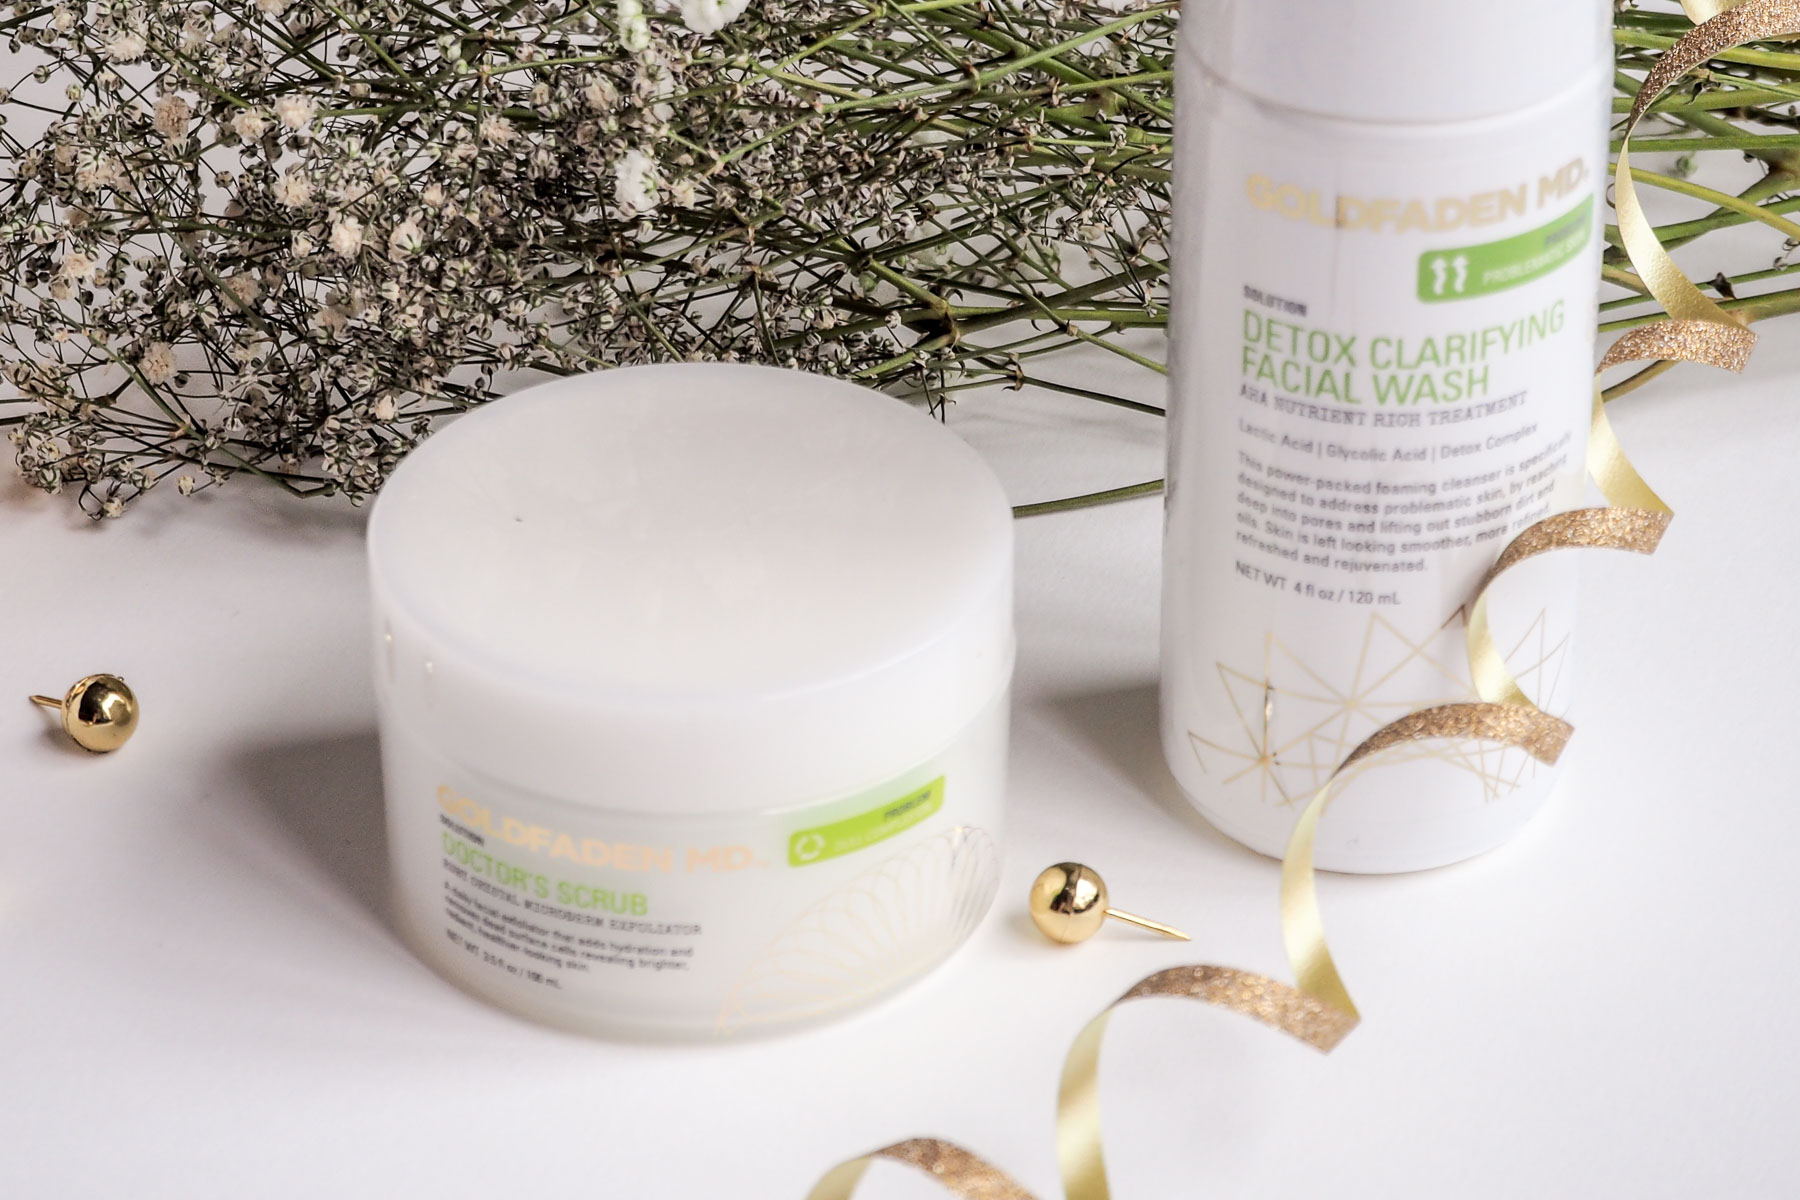 Beauty Review: Goldfaden MD's Detox Clarifying Facial Wash & Doctor's Scrub   Wolf & Stag